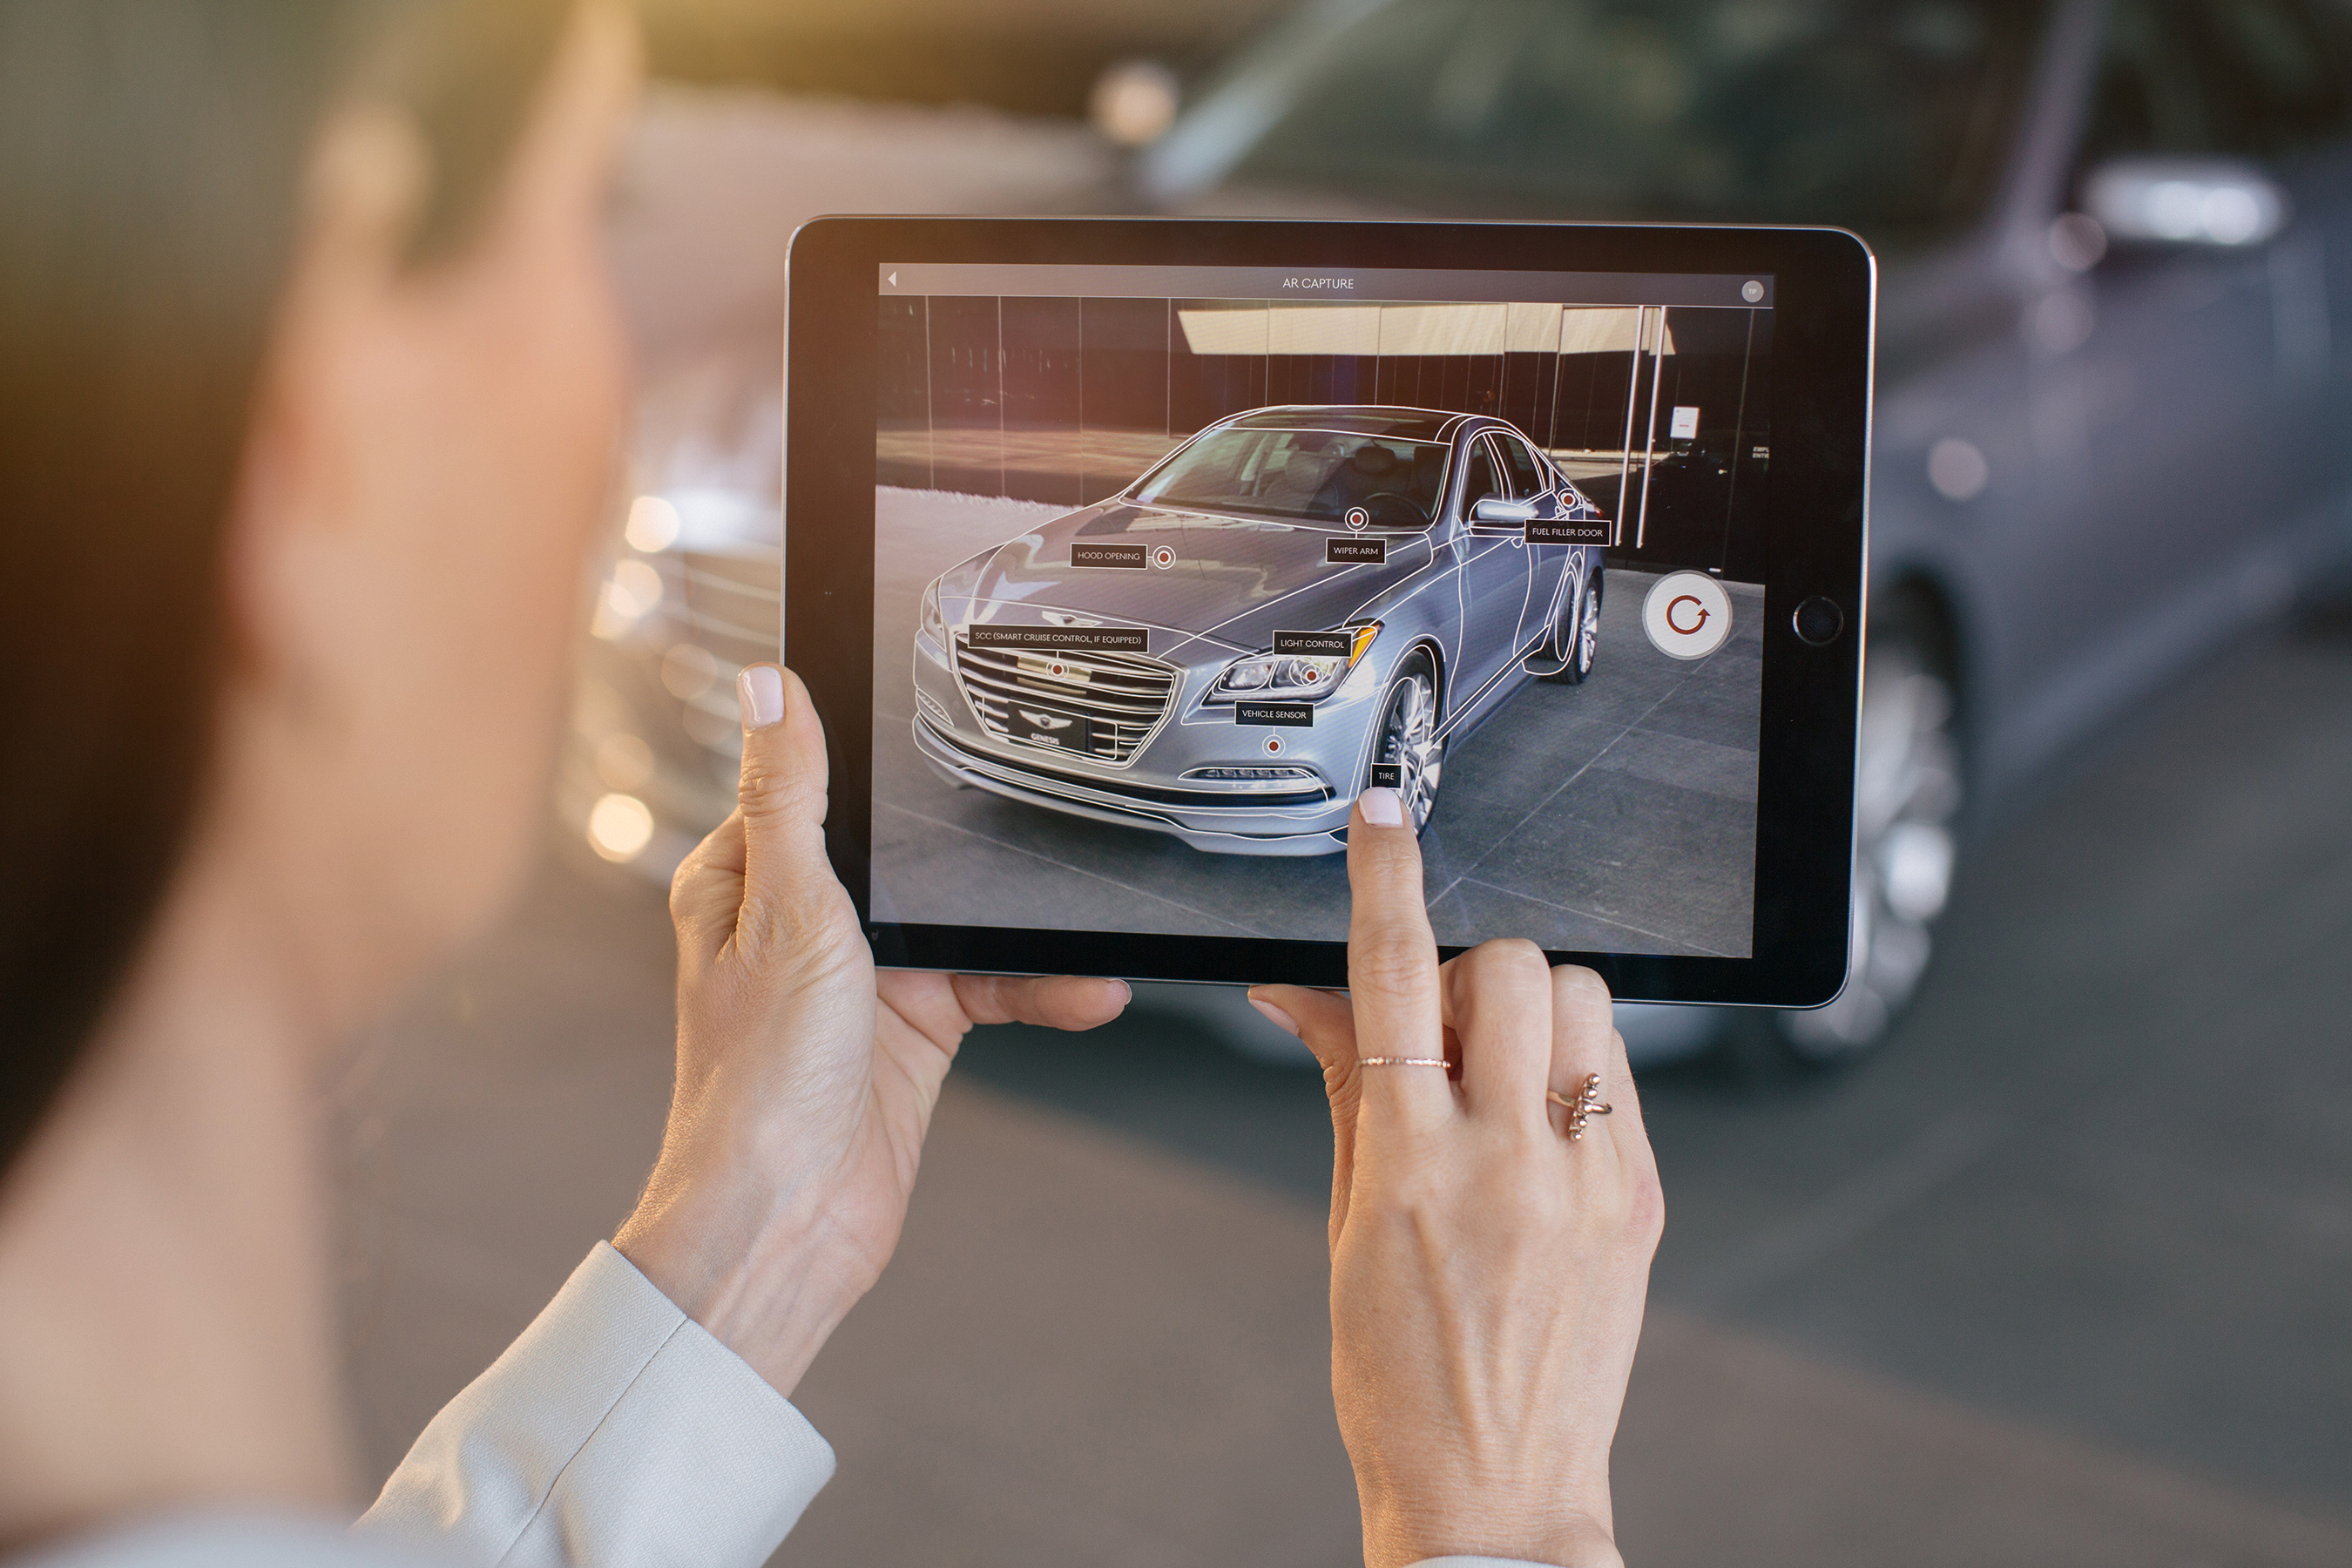 TAKING A PICTURE OF THE FRONT, REAR OR TRUNK WITH THE AR CAPTURE BRINGS TO LIFE IMPORTANT EXTERIOR FEATURES.